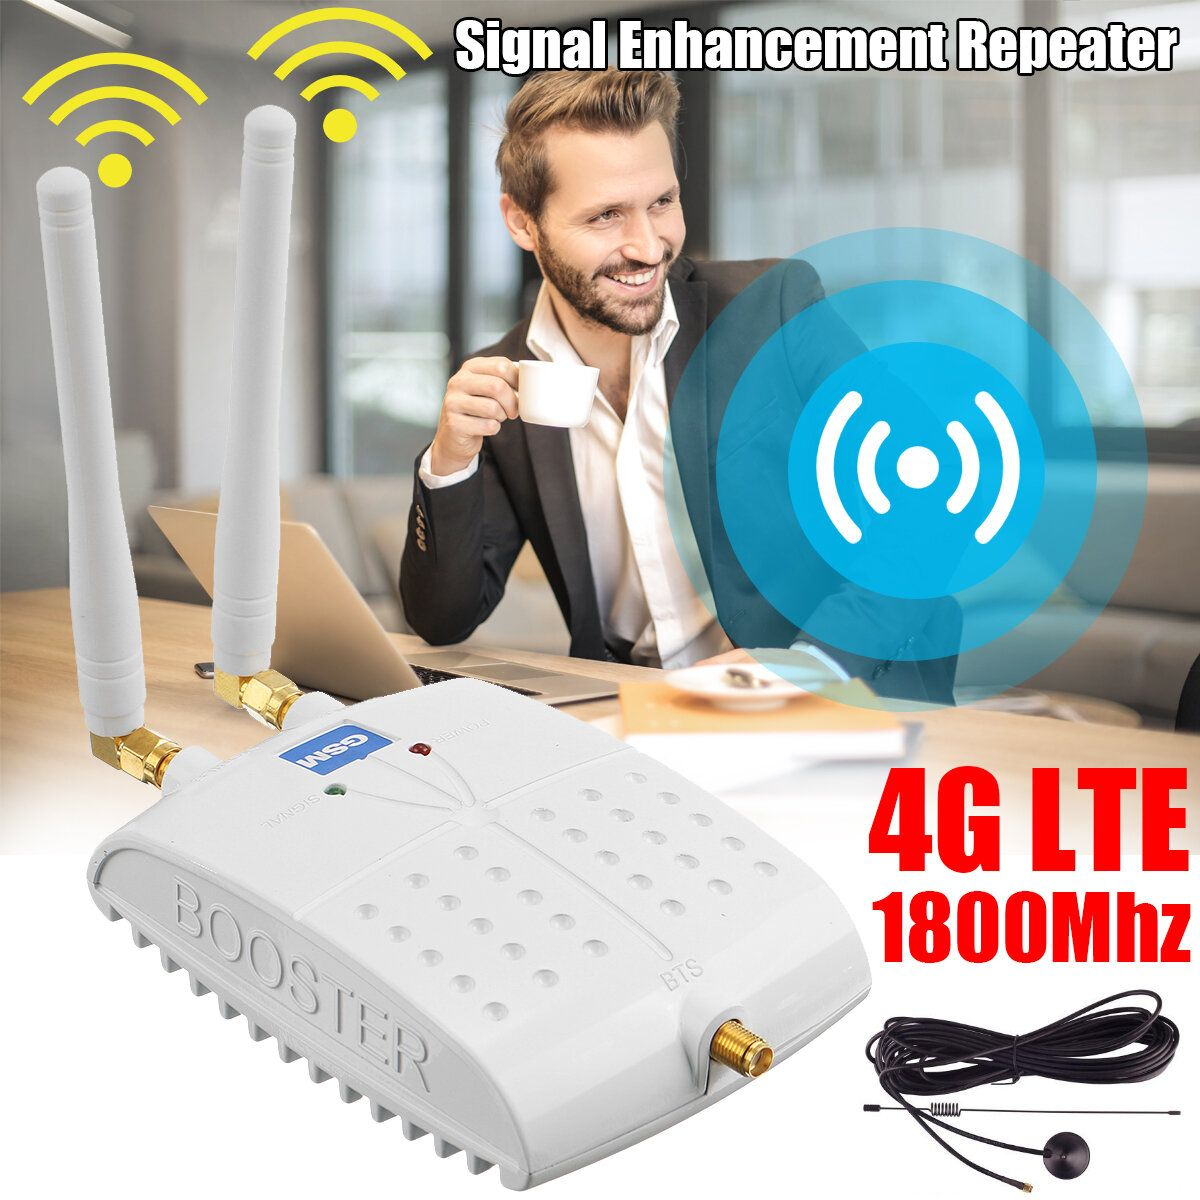 1800MHz GSM Signal Booster International LTE 4G WiFi Router Signal Amplifier Repeater for Cell Phone Wireless Wifi Signal Amplification Router